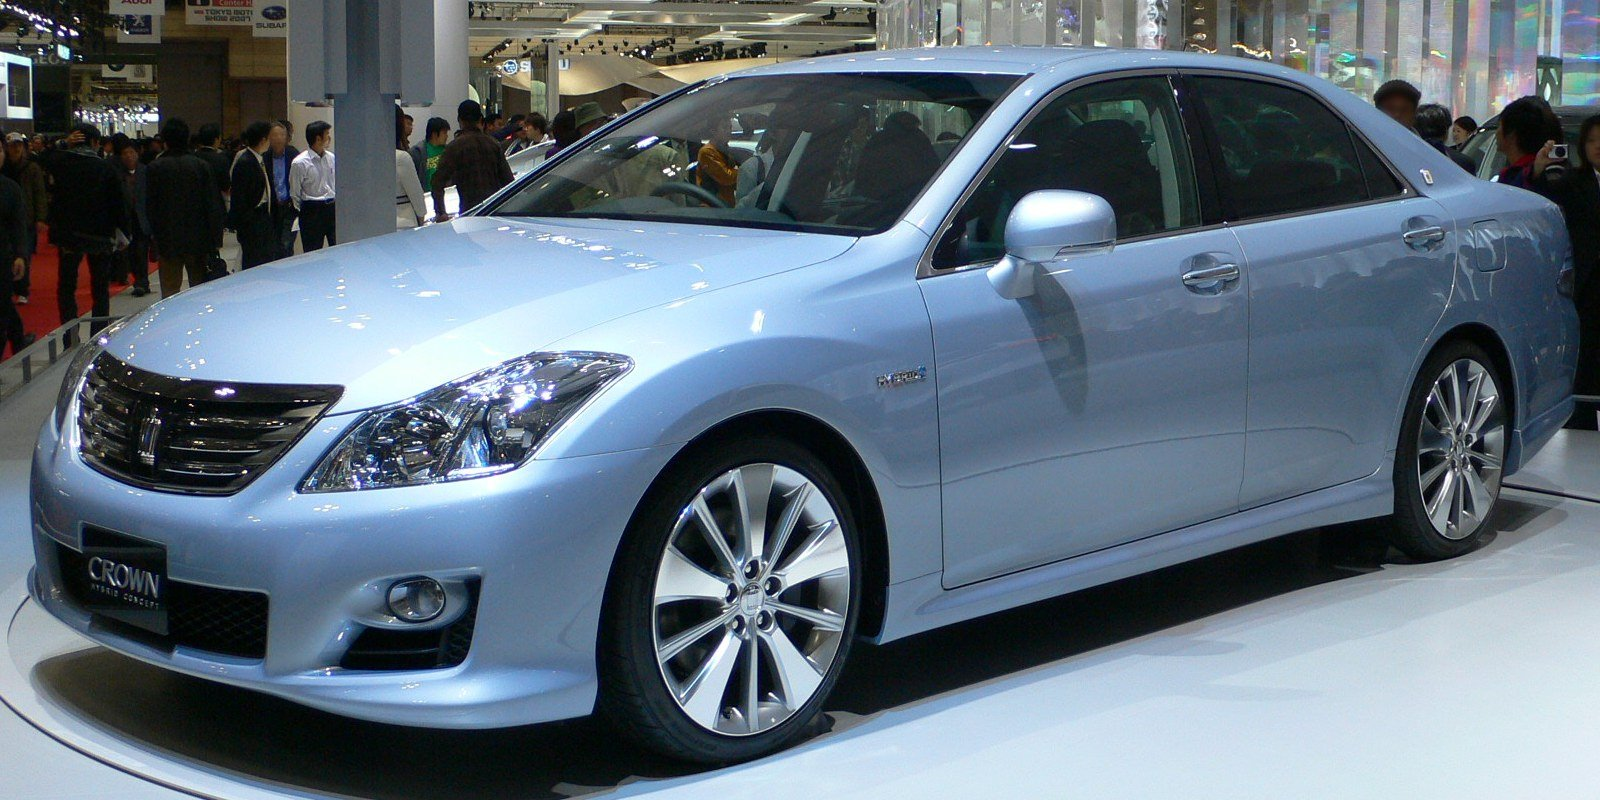 2011 toyota crown hybrid - photo #33